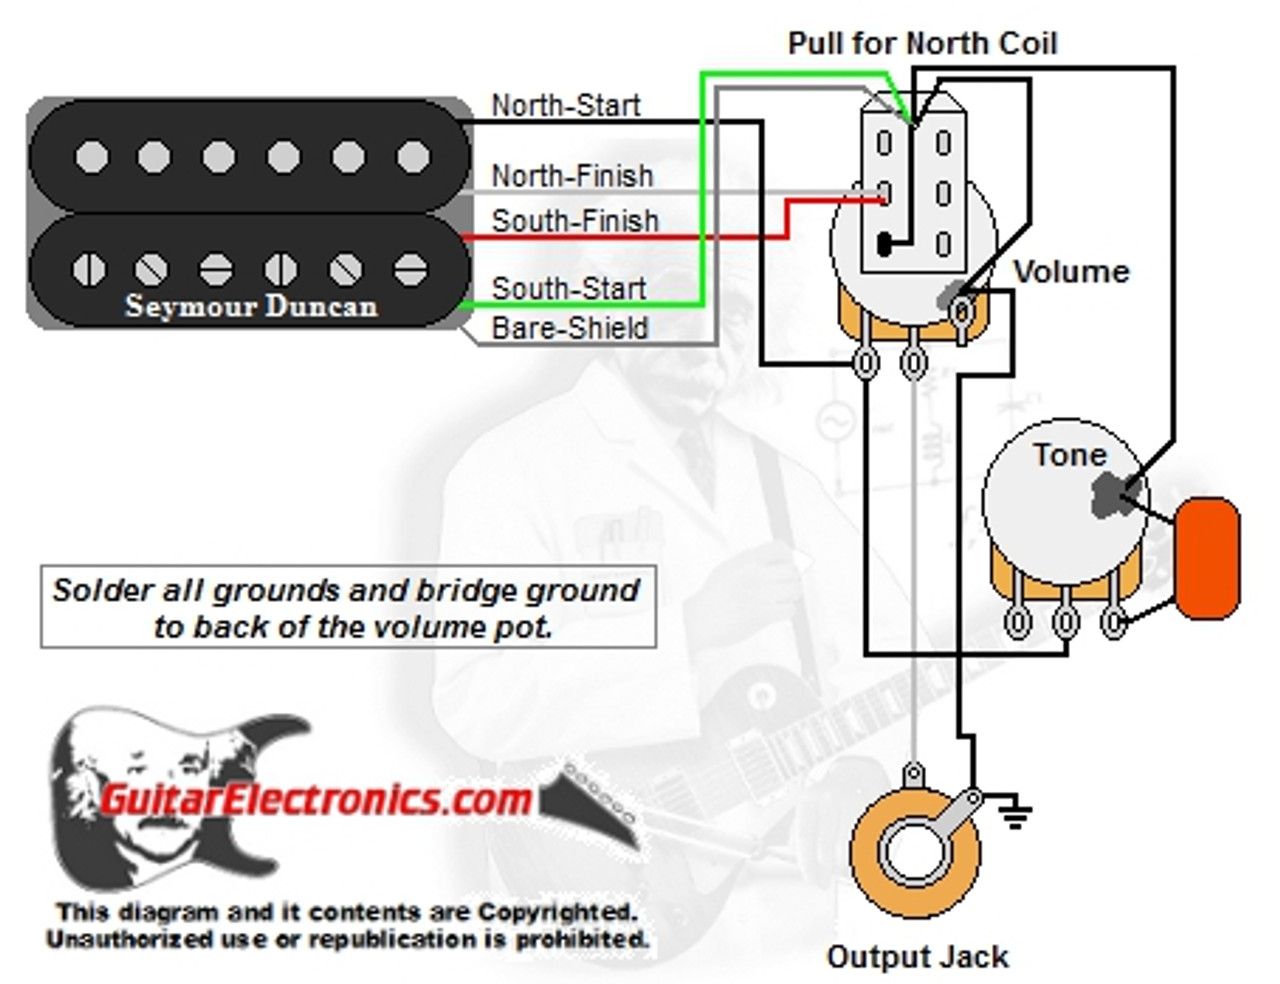 hight resolution of 1 humbucker 1 volume 1tone pull for north single coil guitar wiring diagram 2 humbucker 1 volume 1 tone guitar wiring diagram 1 humbucker 1 volume